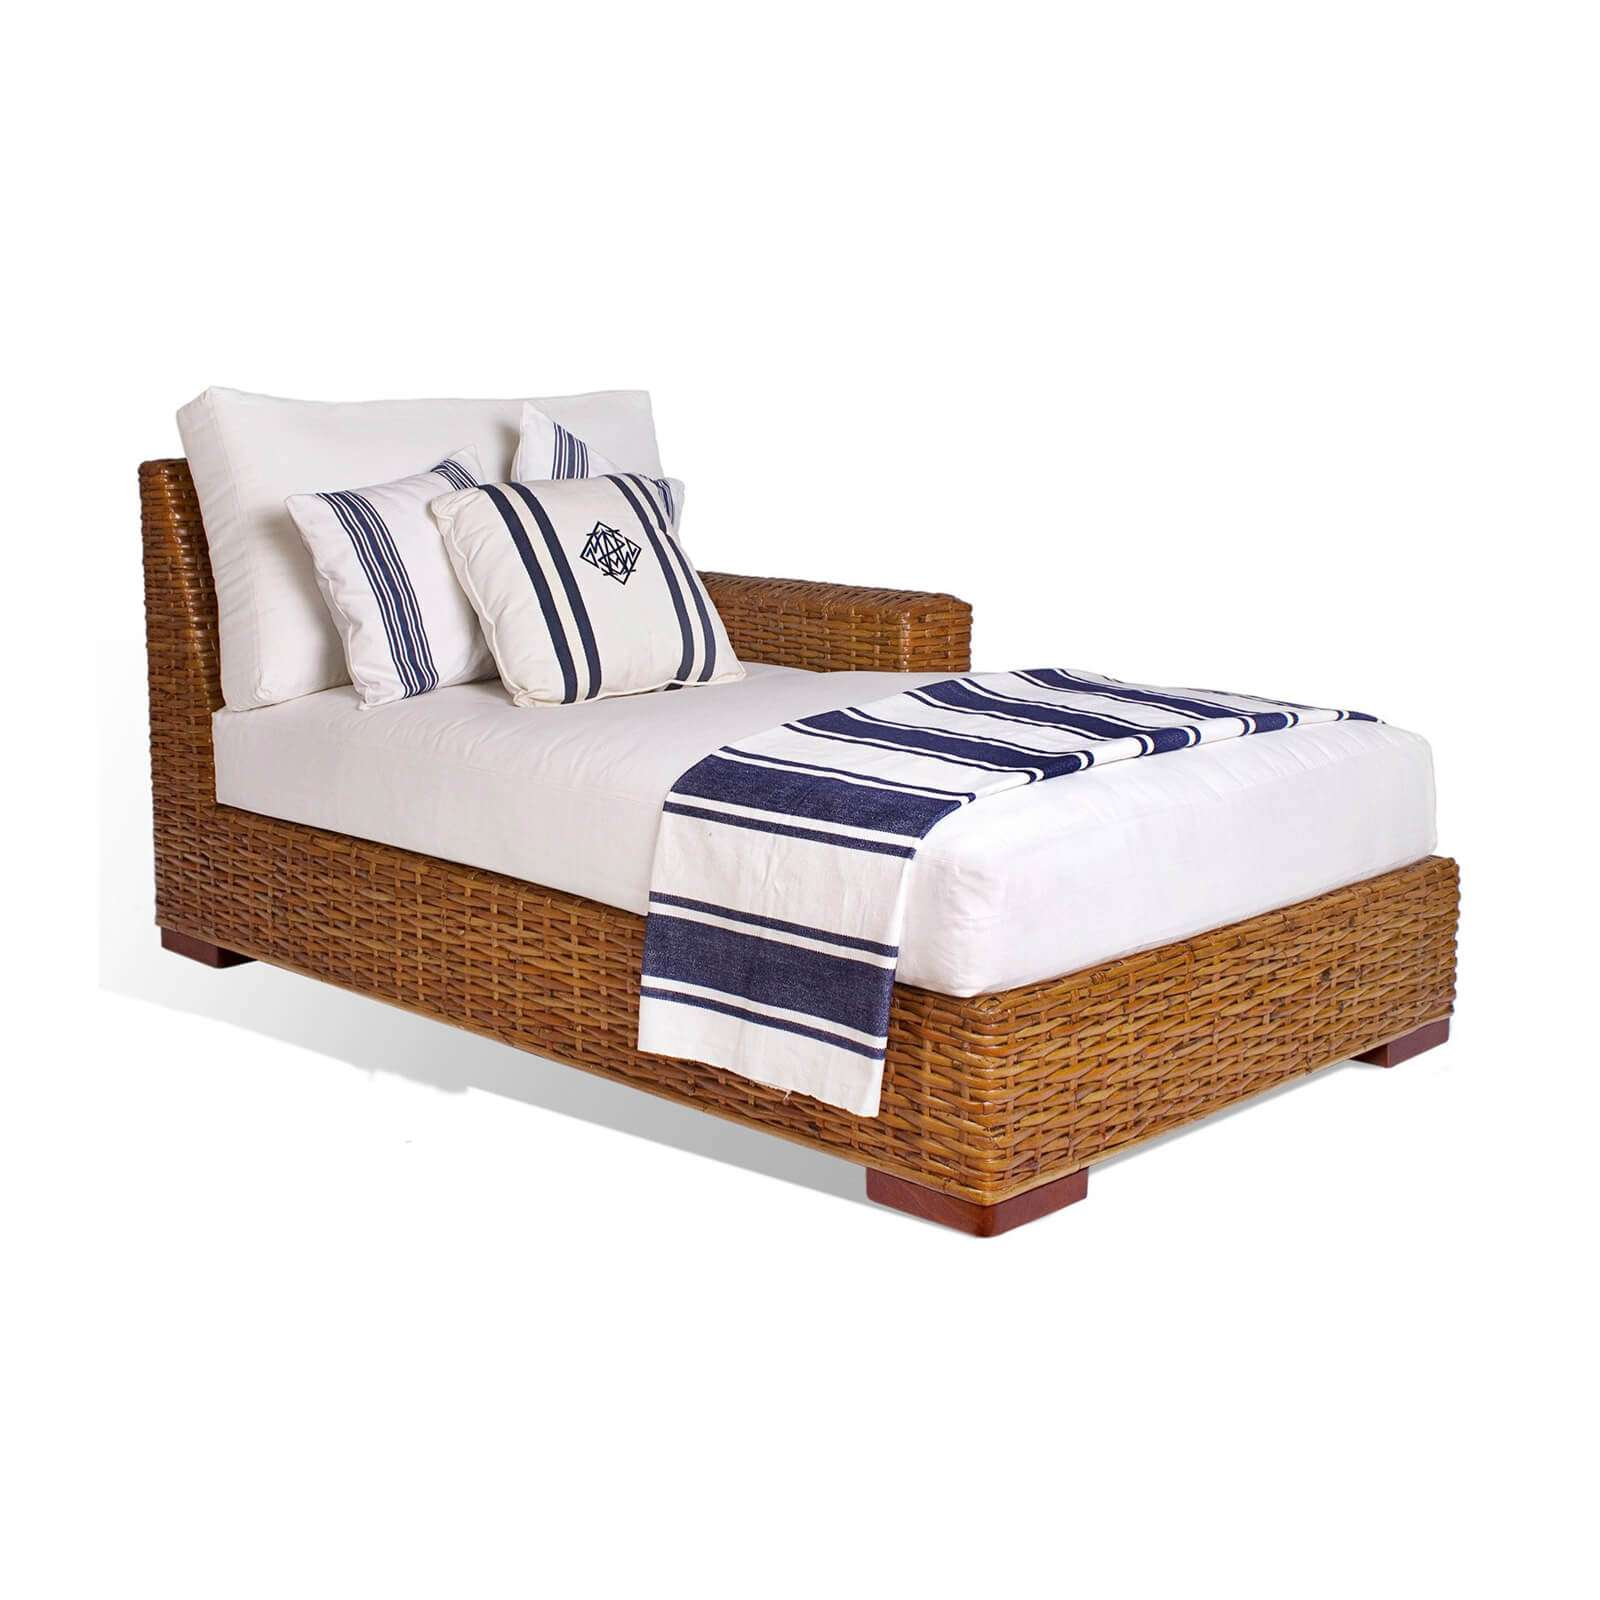 PANAMA DAYBED LEFT - STUART MEMBERY HOME COLLECTION